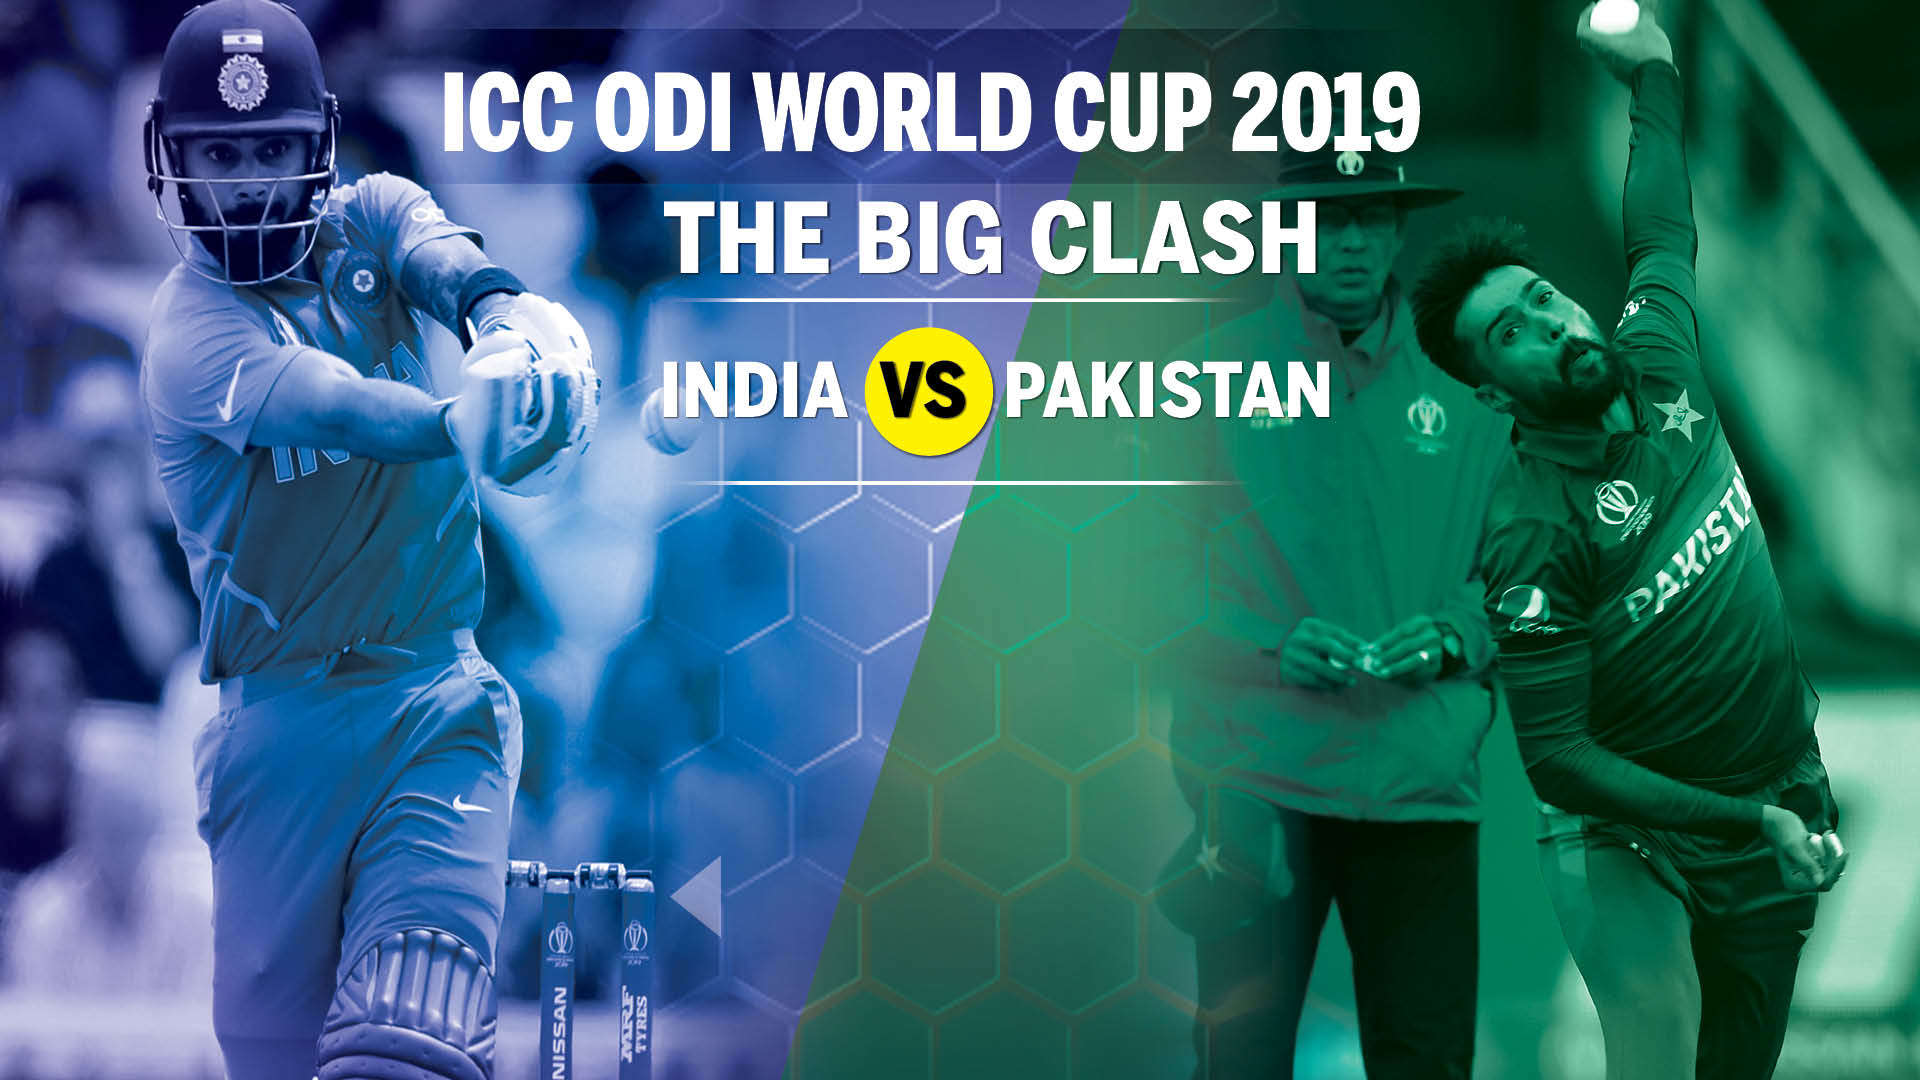 India vs Pakistan World Cup 2019 Will India take their intensity 1920x1080